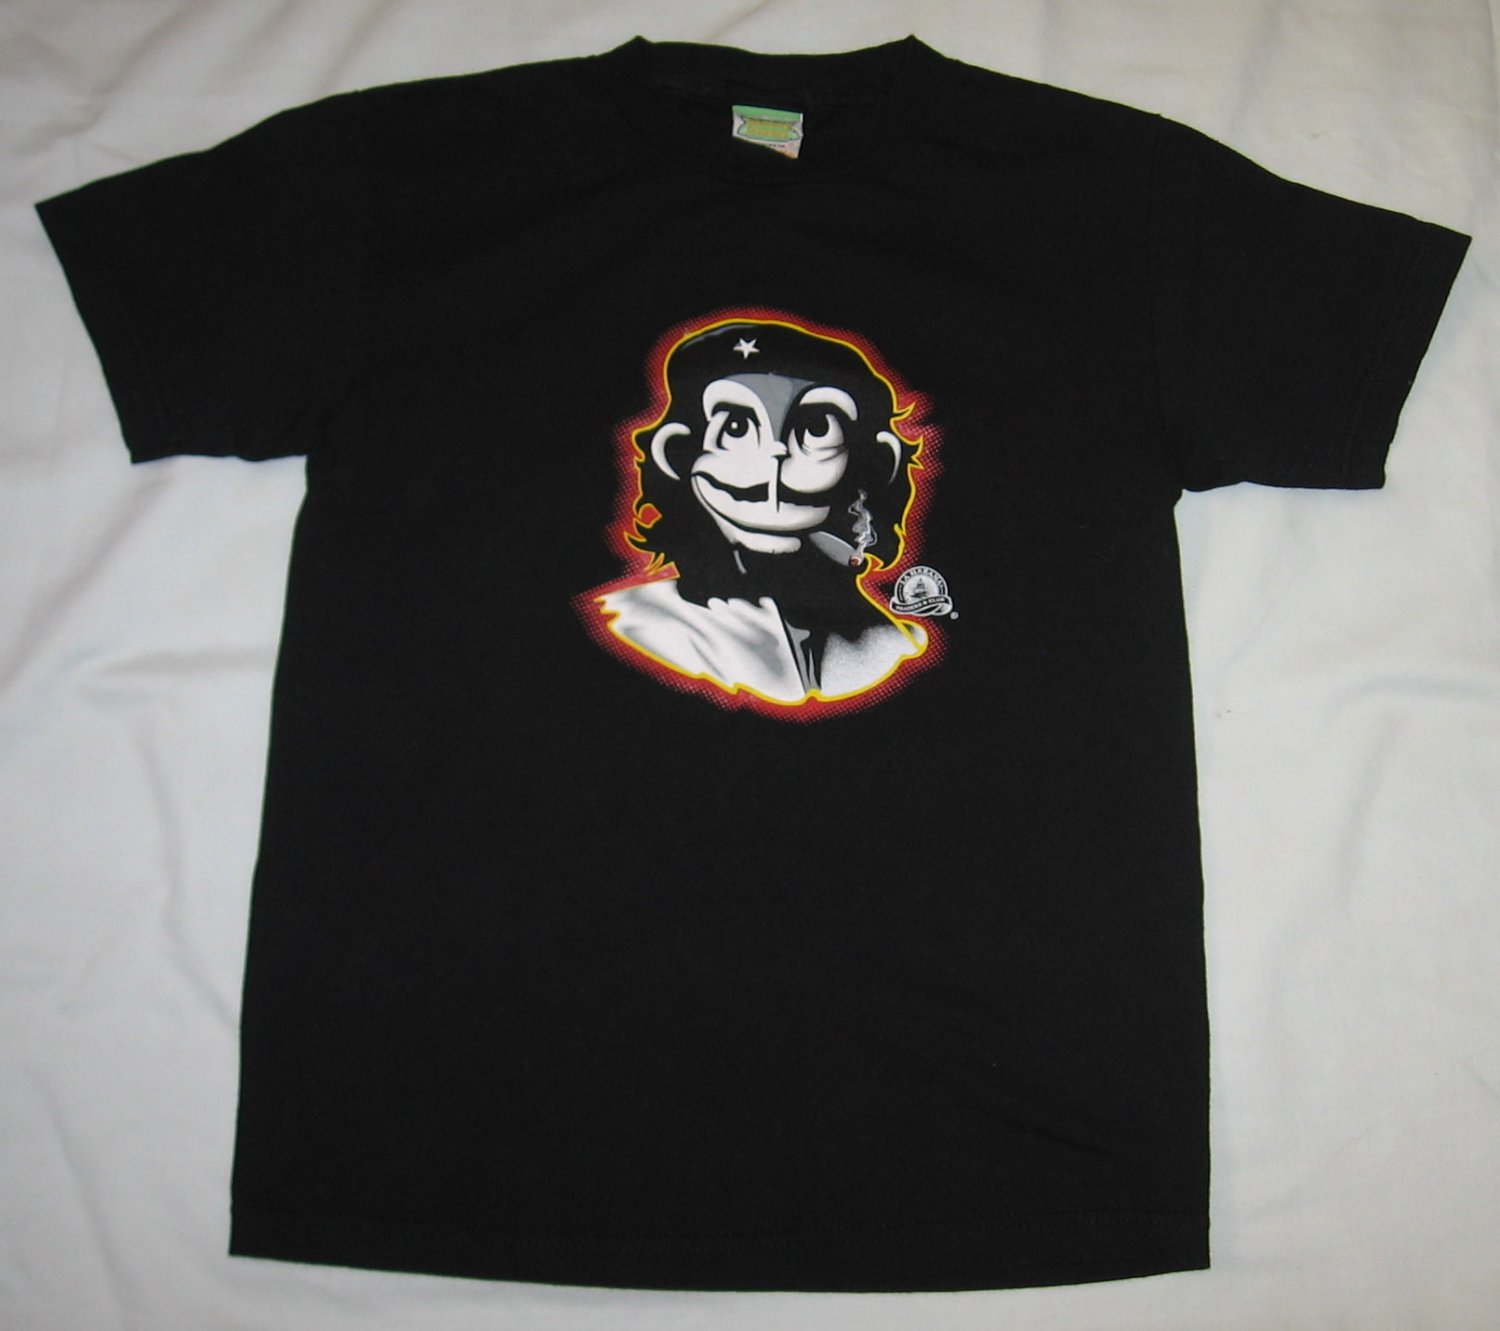 Habana Banana La Habana Traders Club Ensenada Baja Mexico Monkey Shirt Small S NEW